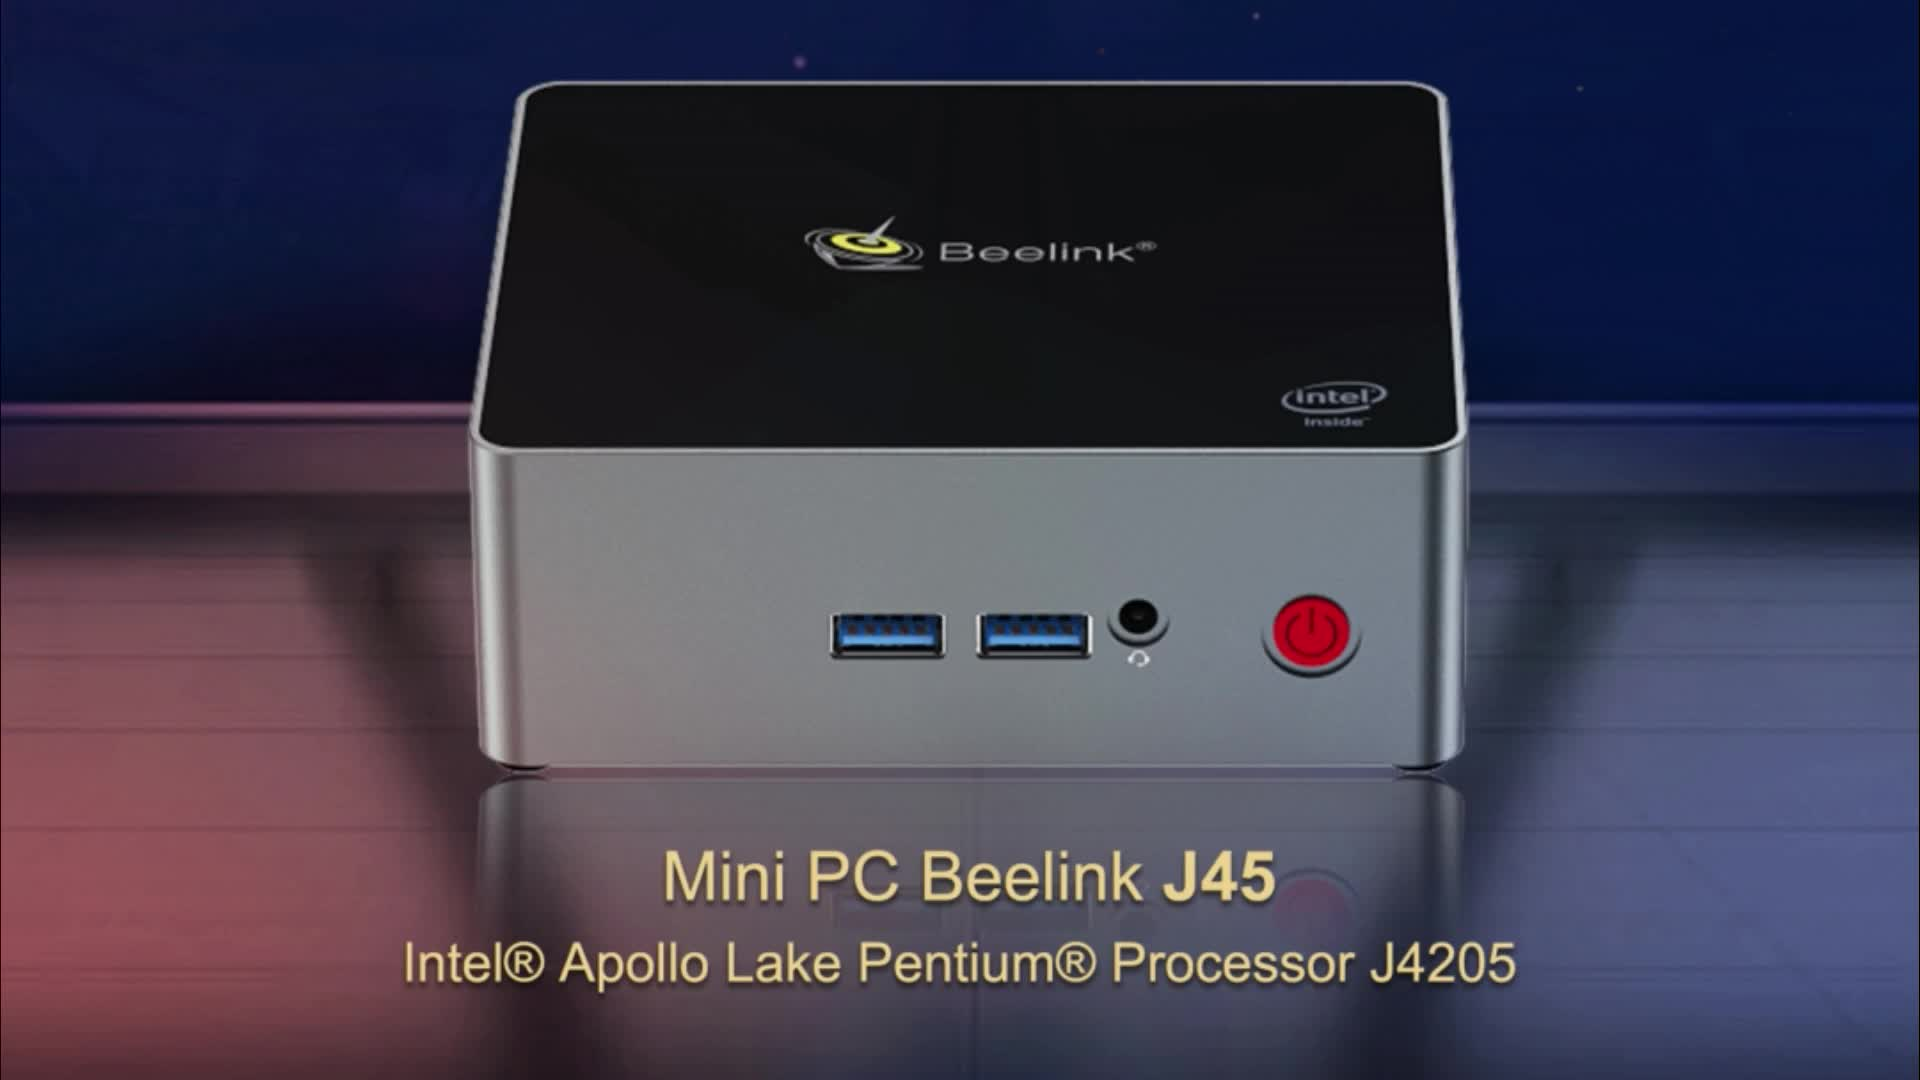 Smarture DDR4 8 ГБ 256 ГБ MSATA Beelink J45 Mini PC ЦП процессора Apollo Lake J4205 мини-компьютер Beelink J45